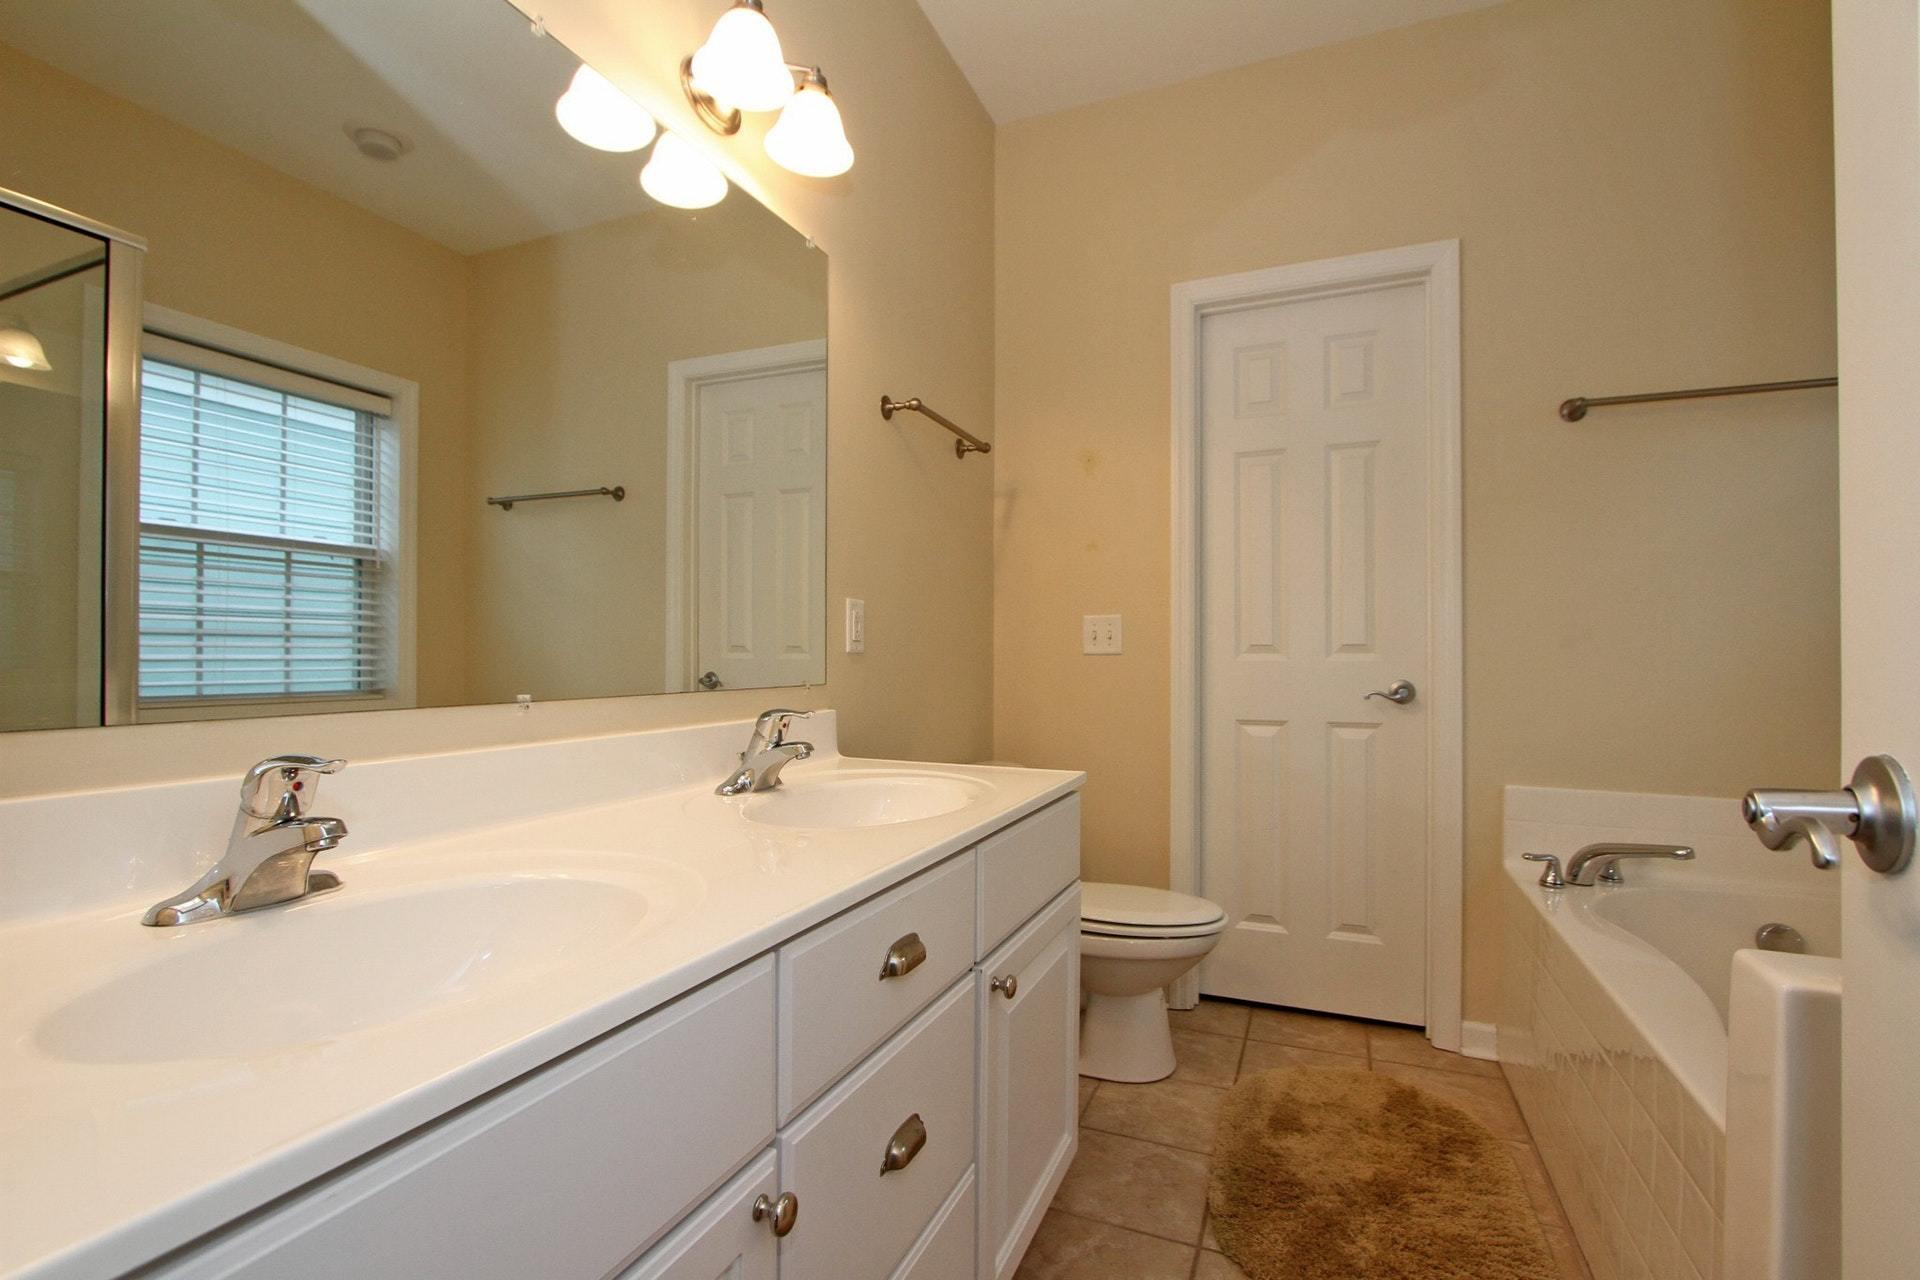 Waters Edge Homes For Sale - 85 2nd, Folly Beach, SC - 1